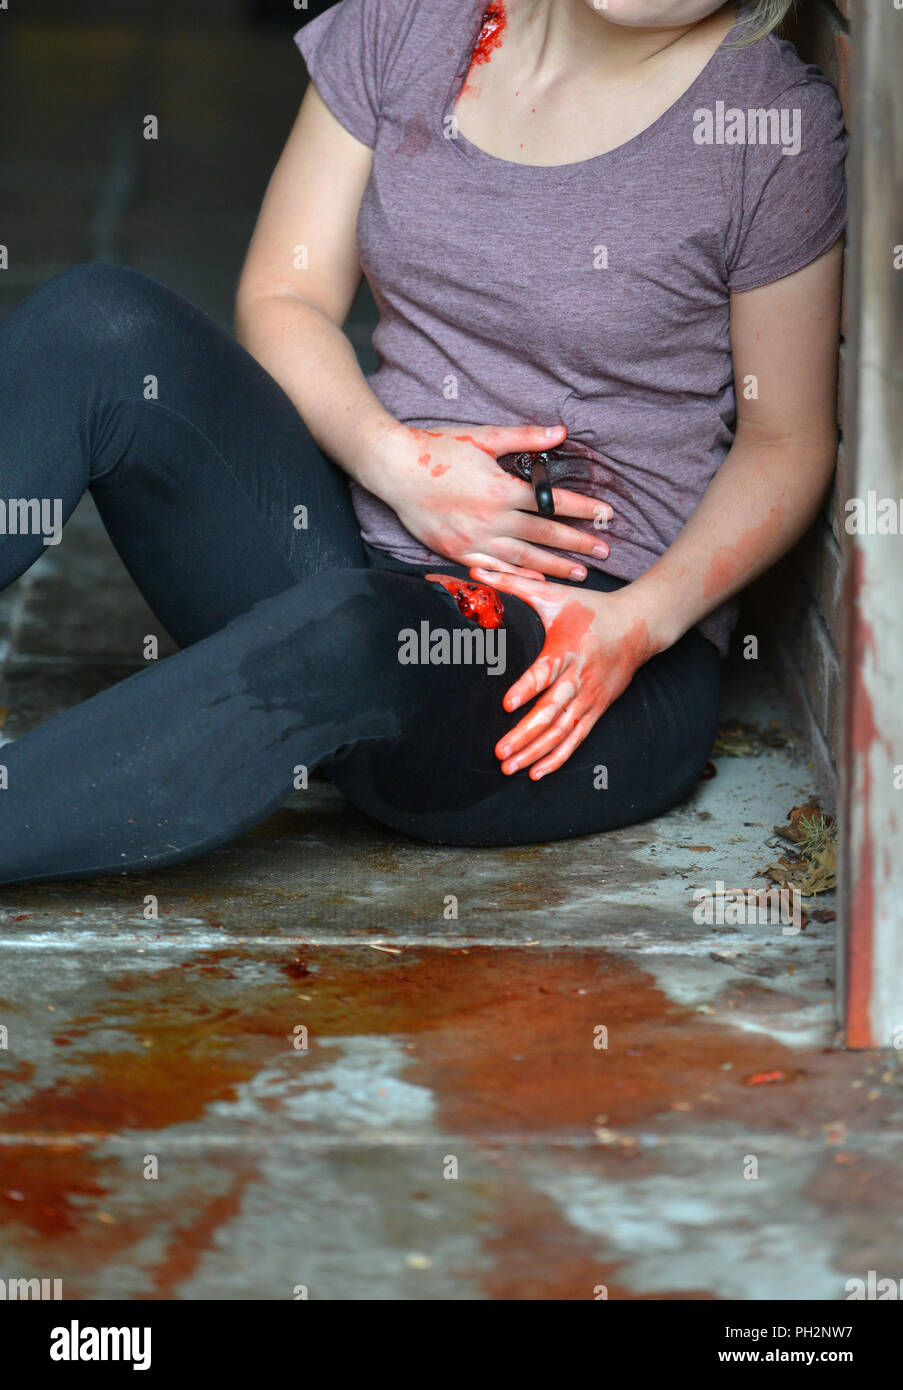 Mock-up of a stab victim in a doorway - Stock Image